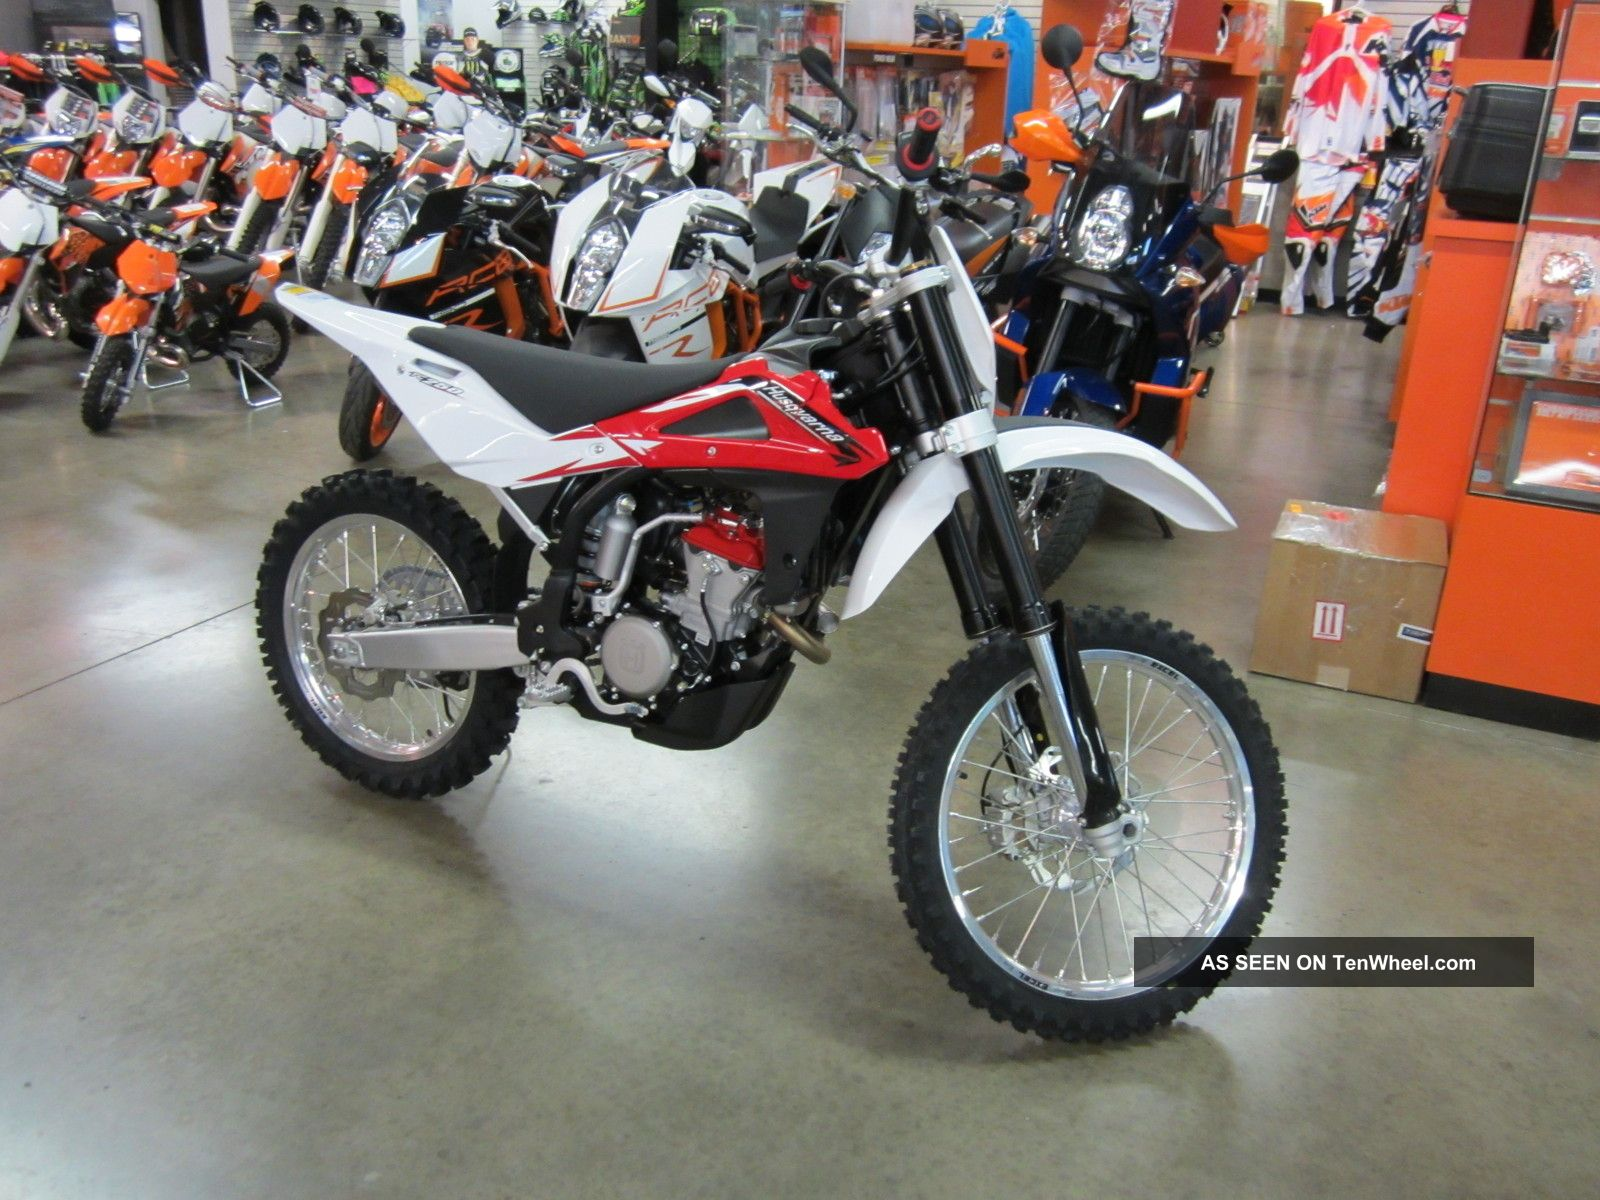 2012 Husqvarna Tc 250 Off - Road Motorcycle Was $6999 Now $3999 Nr Husqvarna photo